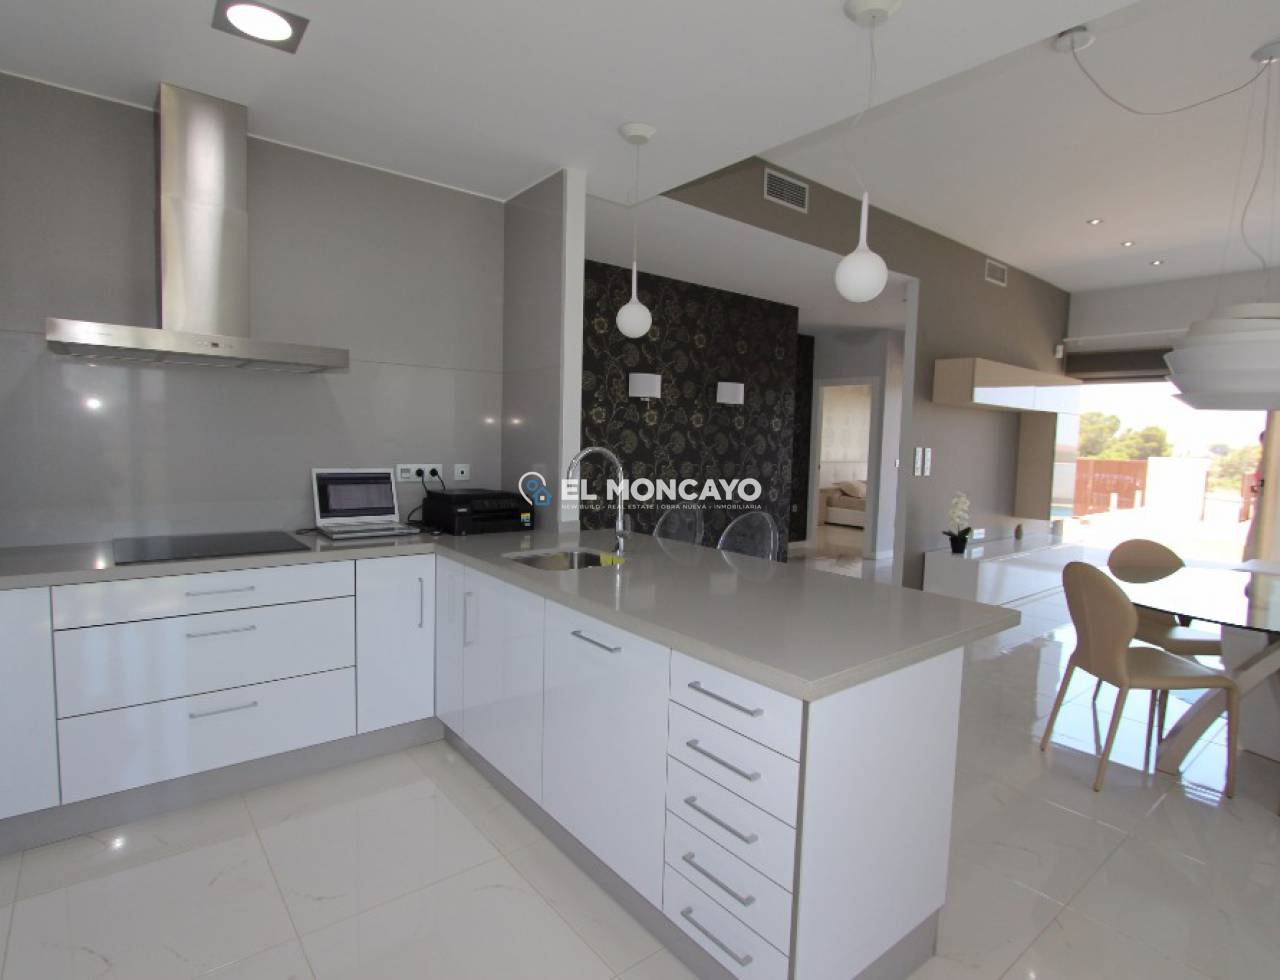 New build villa in Villamartin - Orihuela Costa - Costa Blanca south 142 (13)